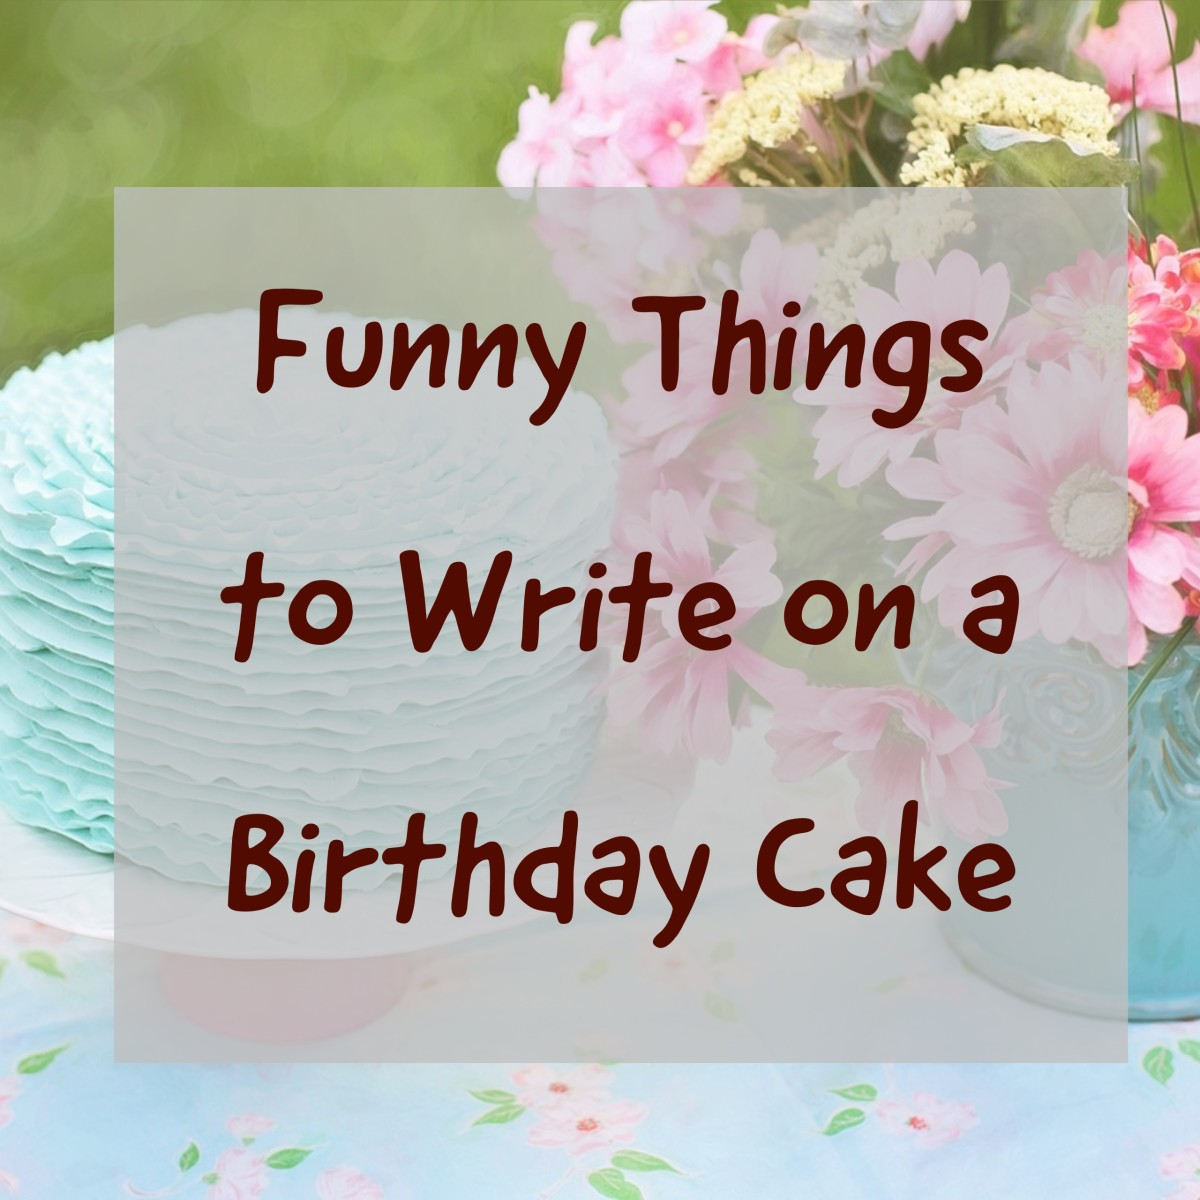 Pleasing Over 100 Funny Things To Write On A Birthday Cake Holidappy Personalised Birthday Cards Petedlily Jamesorg